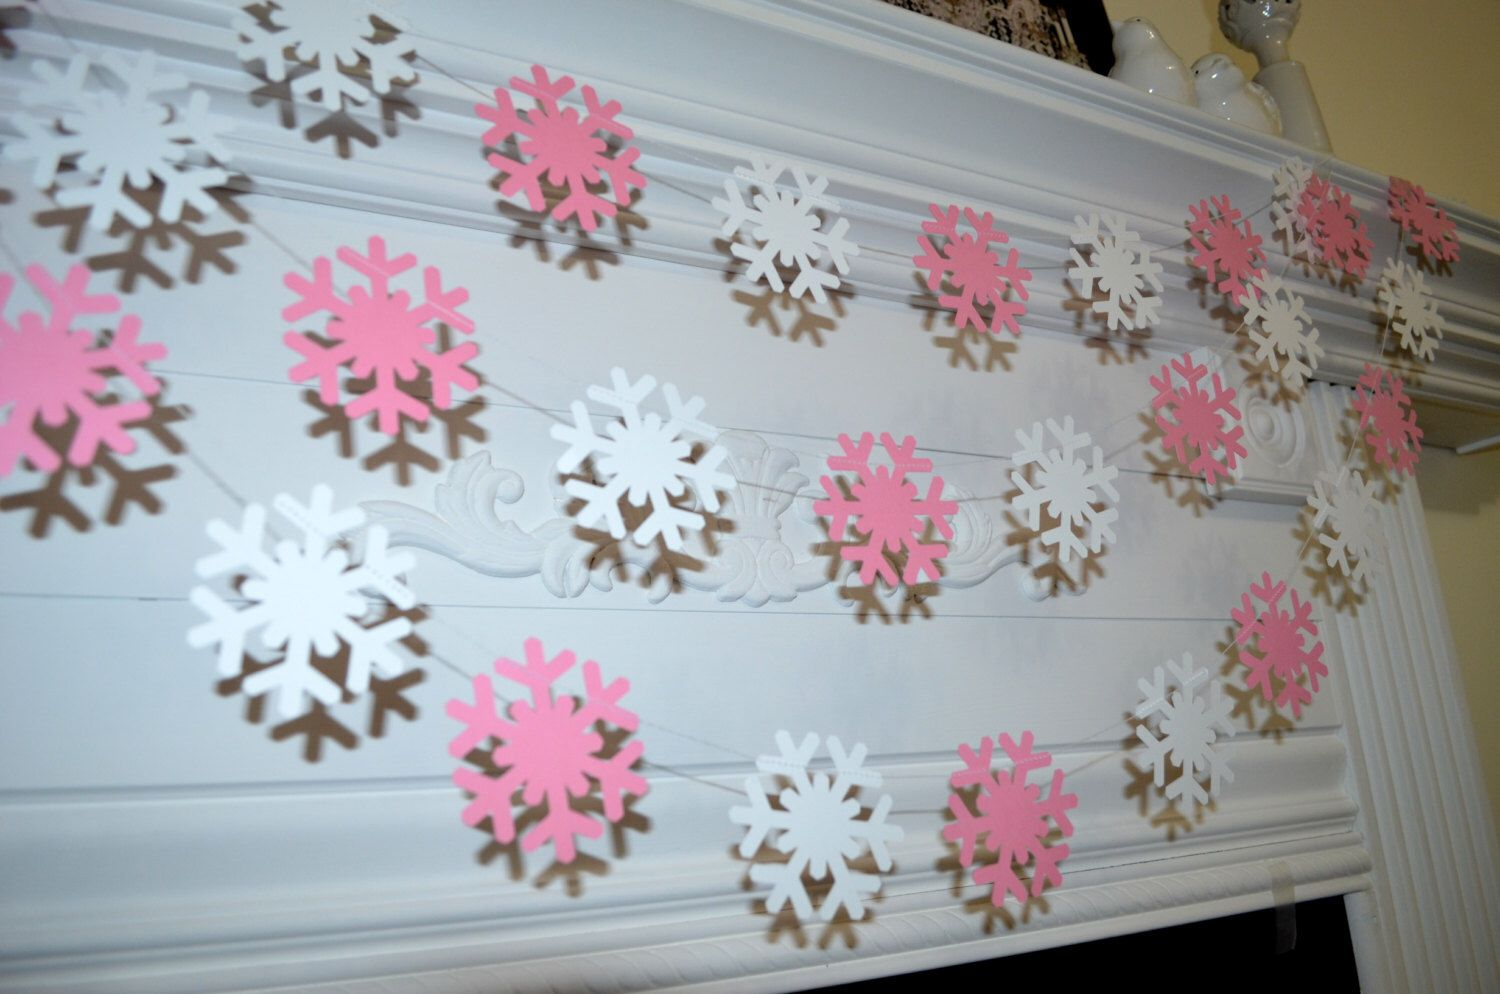 Pink snowflake garland, pink Christmas garland, snowflake banner, Pink Christmas decor, baby girl Christmas room decor Shabby chic Christmas by DCBannerDesigns on Etsy https://www.etsy.com/listing/212218310/pink-snowflake-garland-pink-christmas